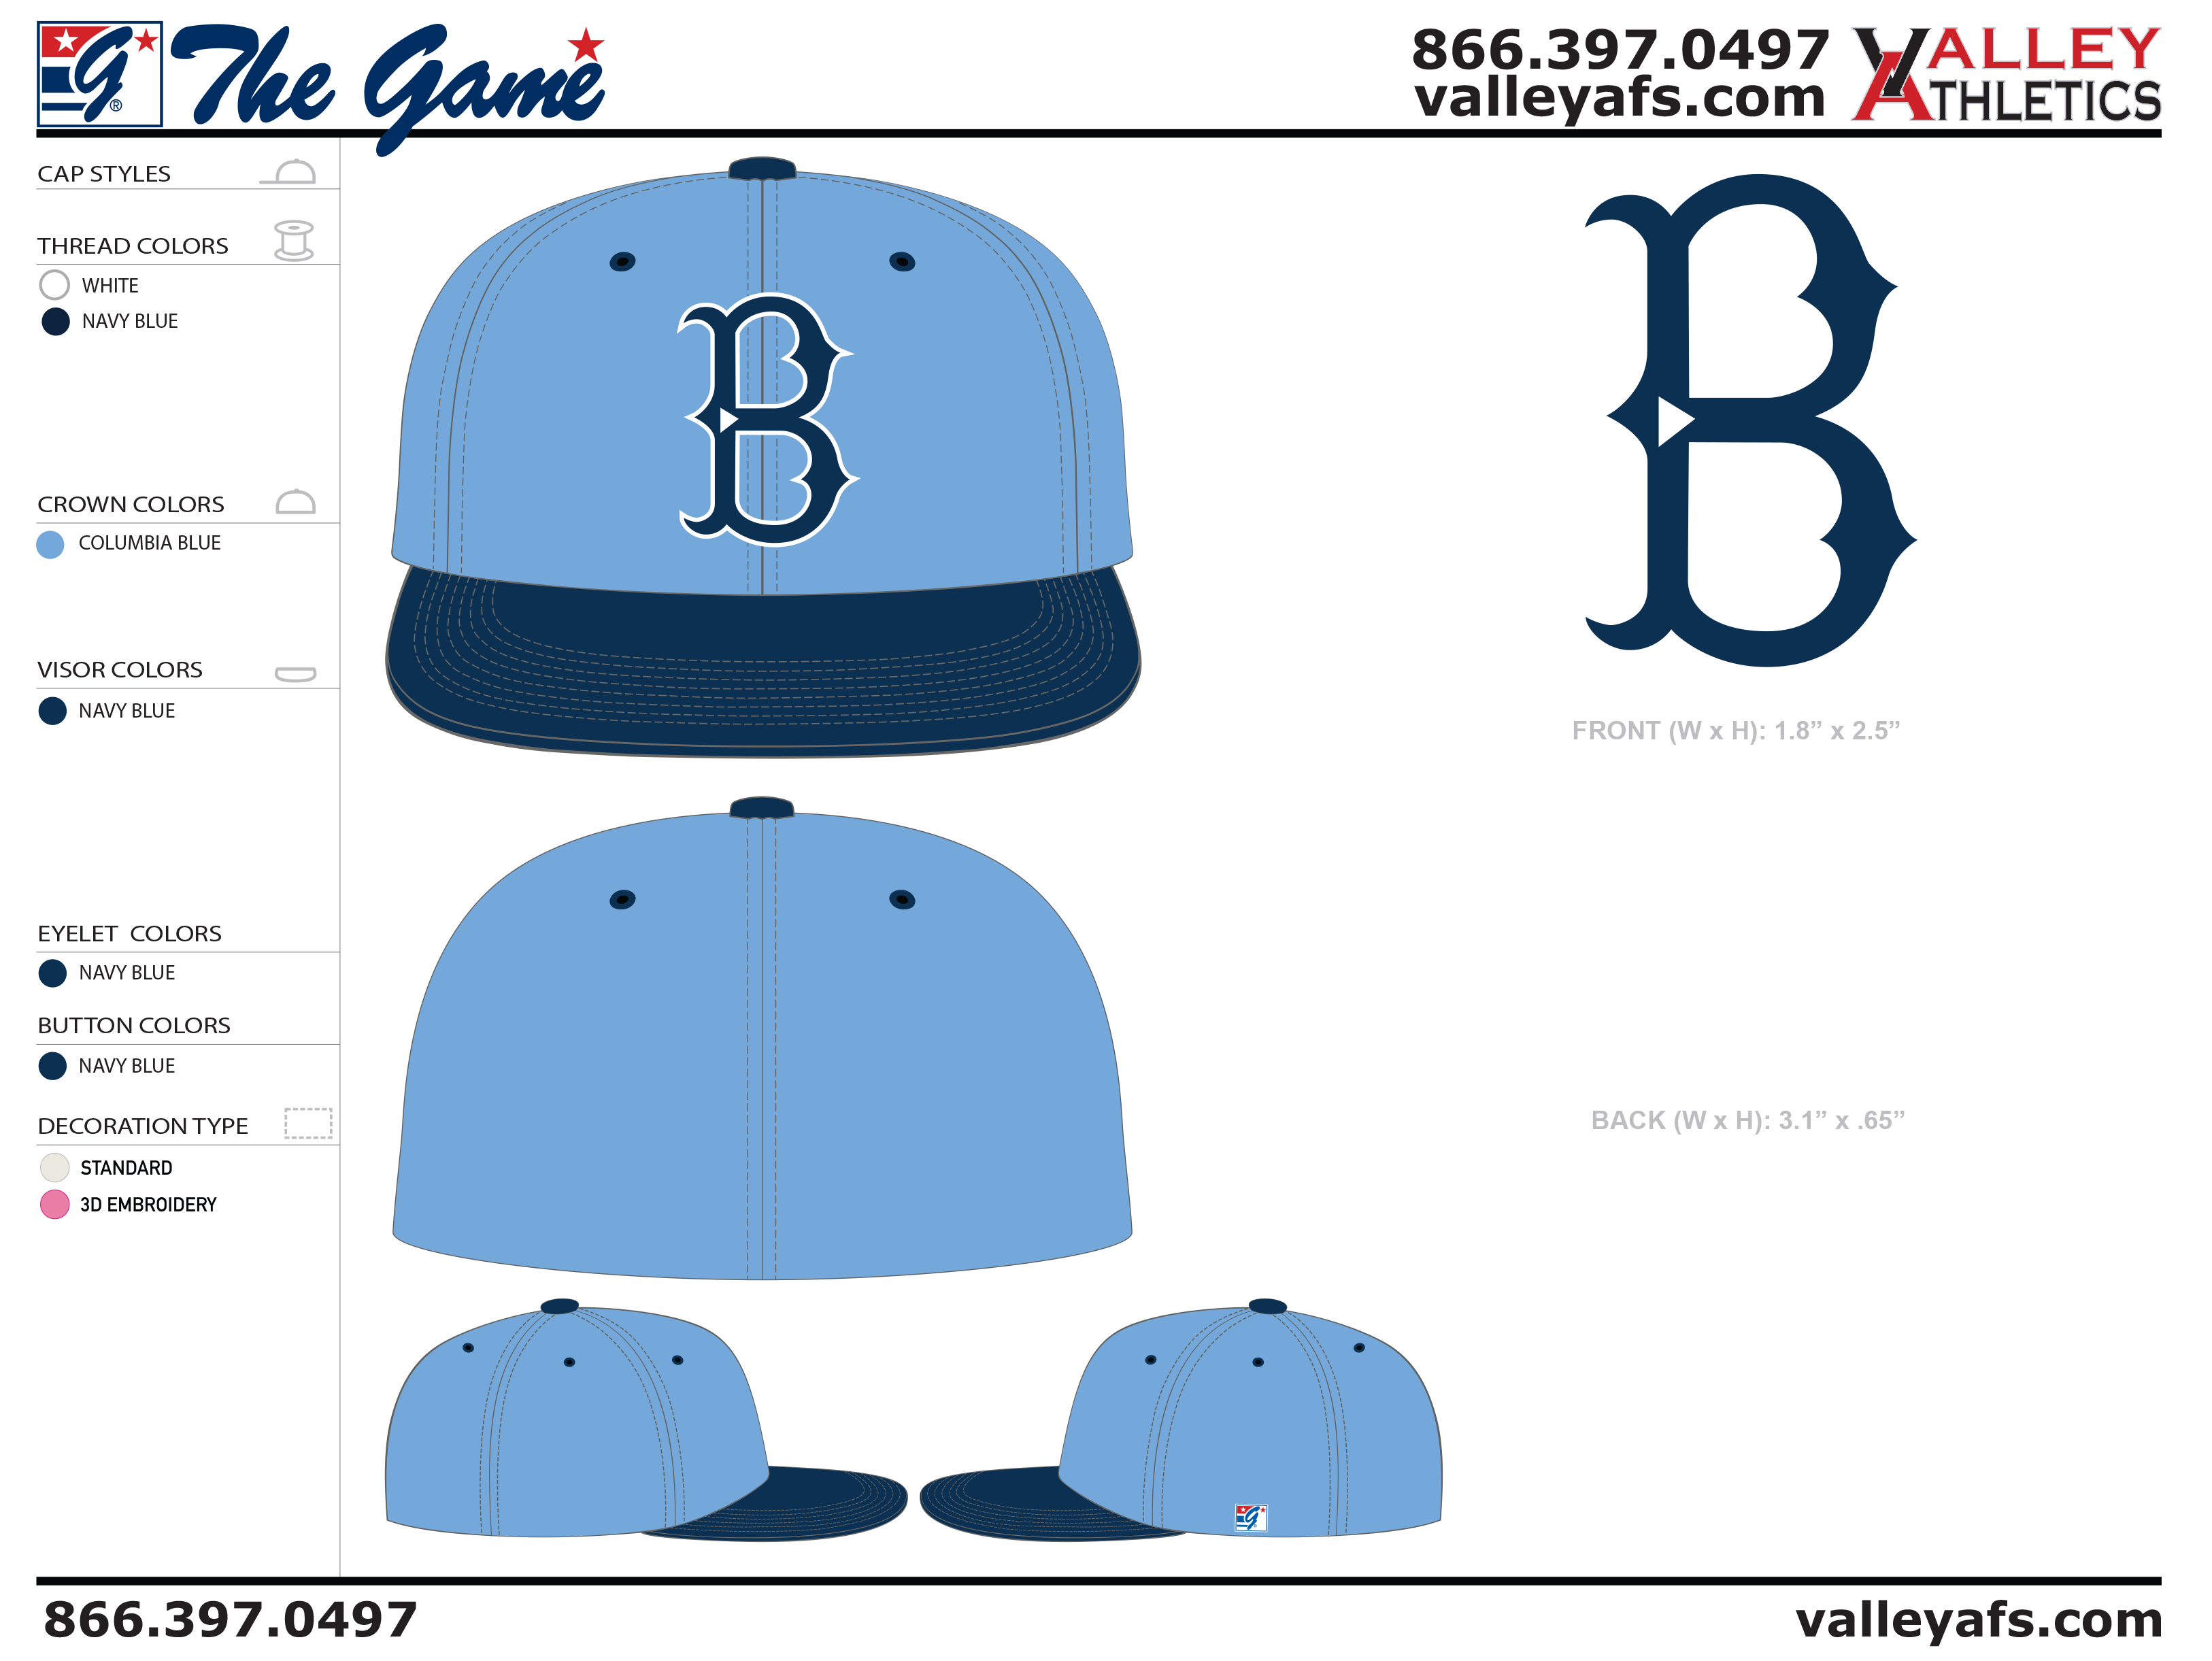 Columbia Blue Navy Blue Hat Designs - Valley AFS 2bb5d00df3d